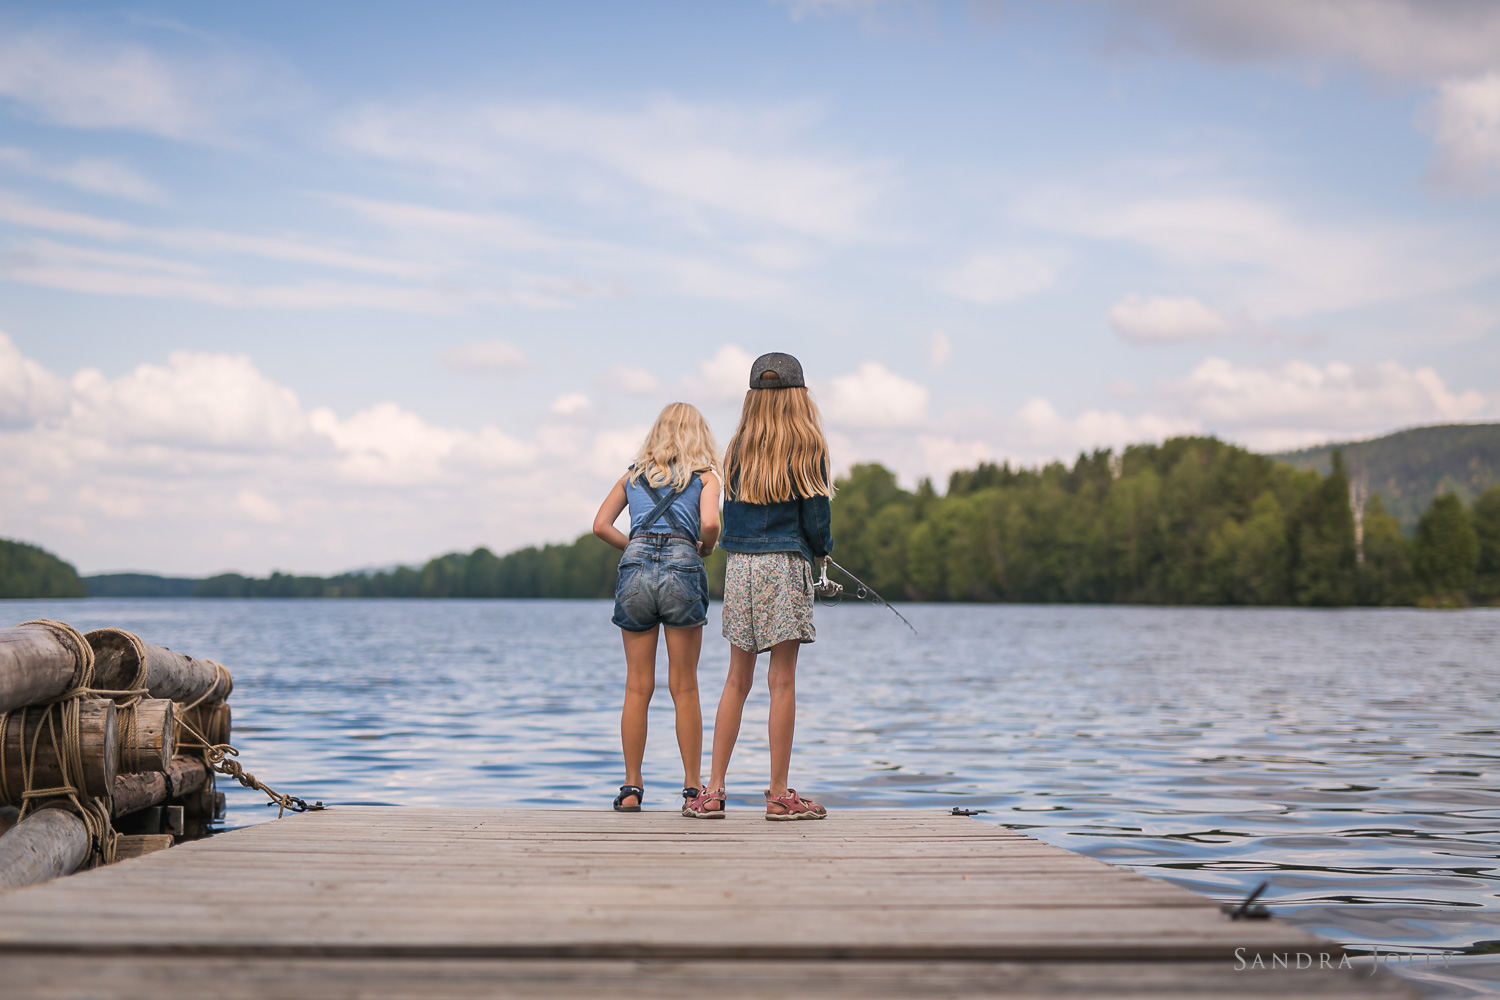 Sisters-fishing-in-lake-by-Stockholm-family-photographer-Sandra-Jolly.jpg